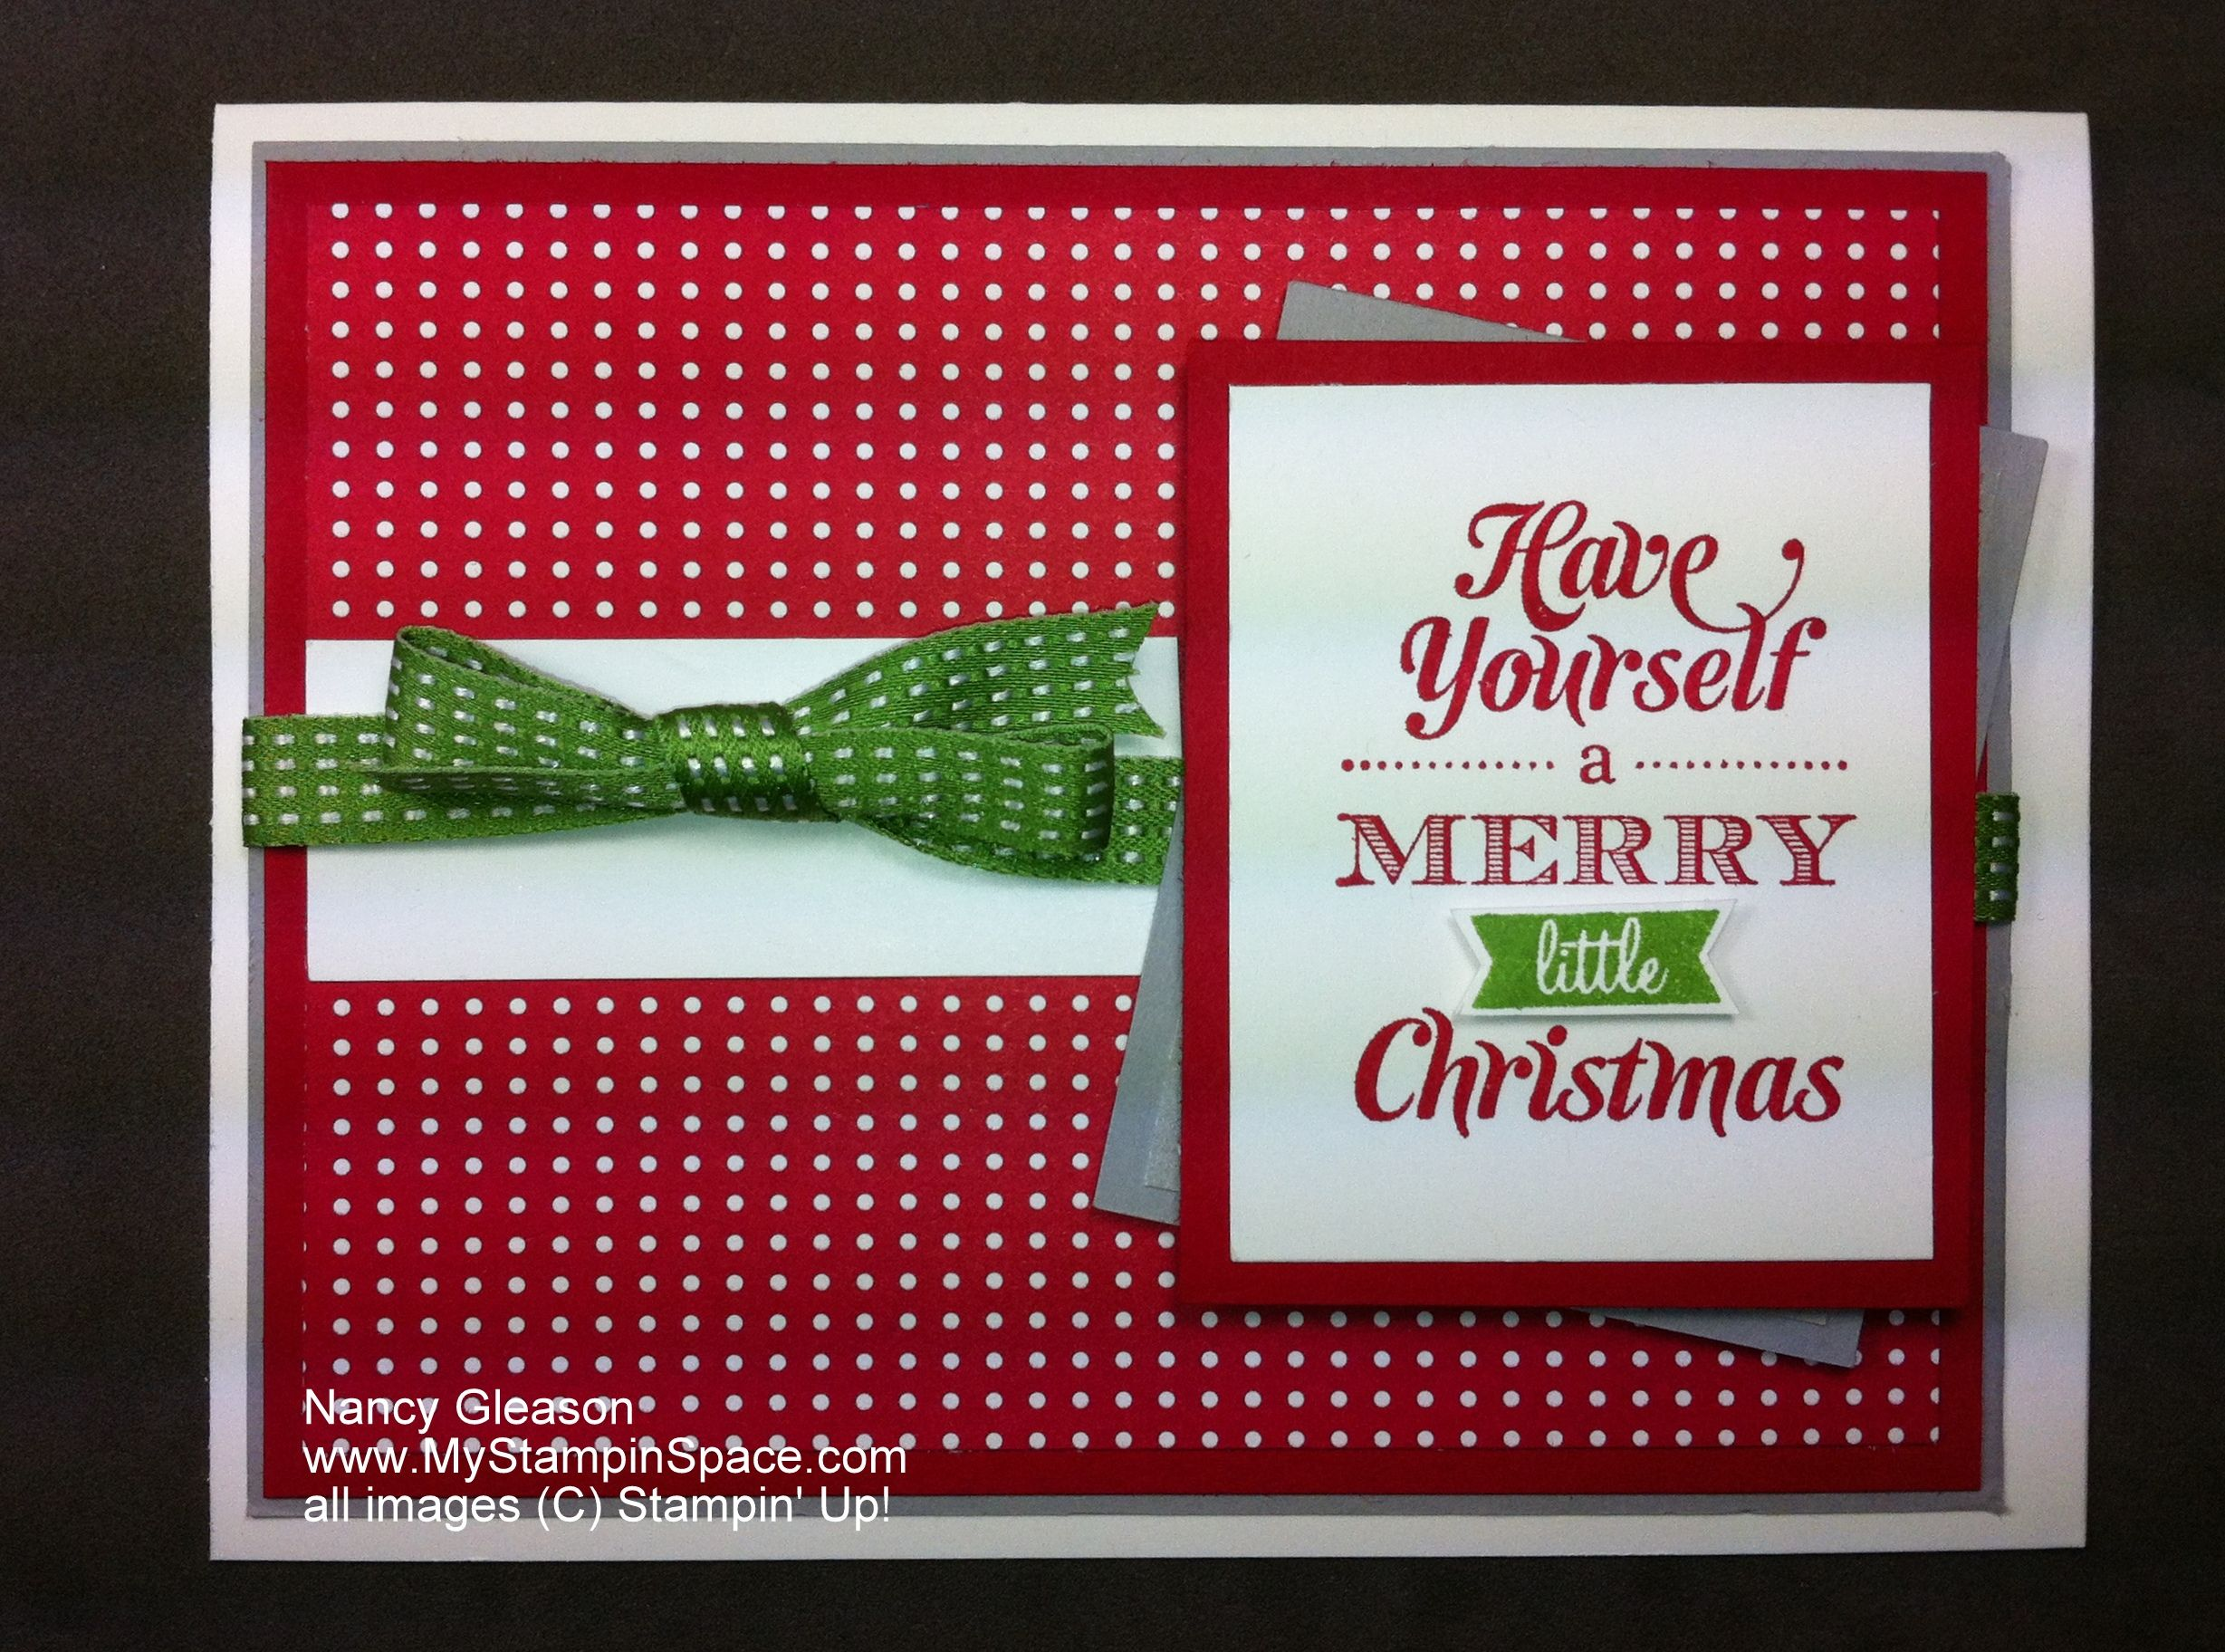 Have Yourself a Merry Little Christmas   Christmas 2013   Pinterest ...